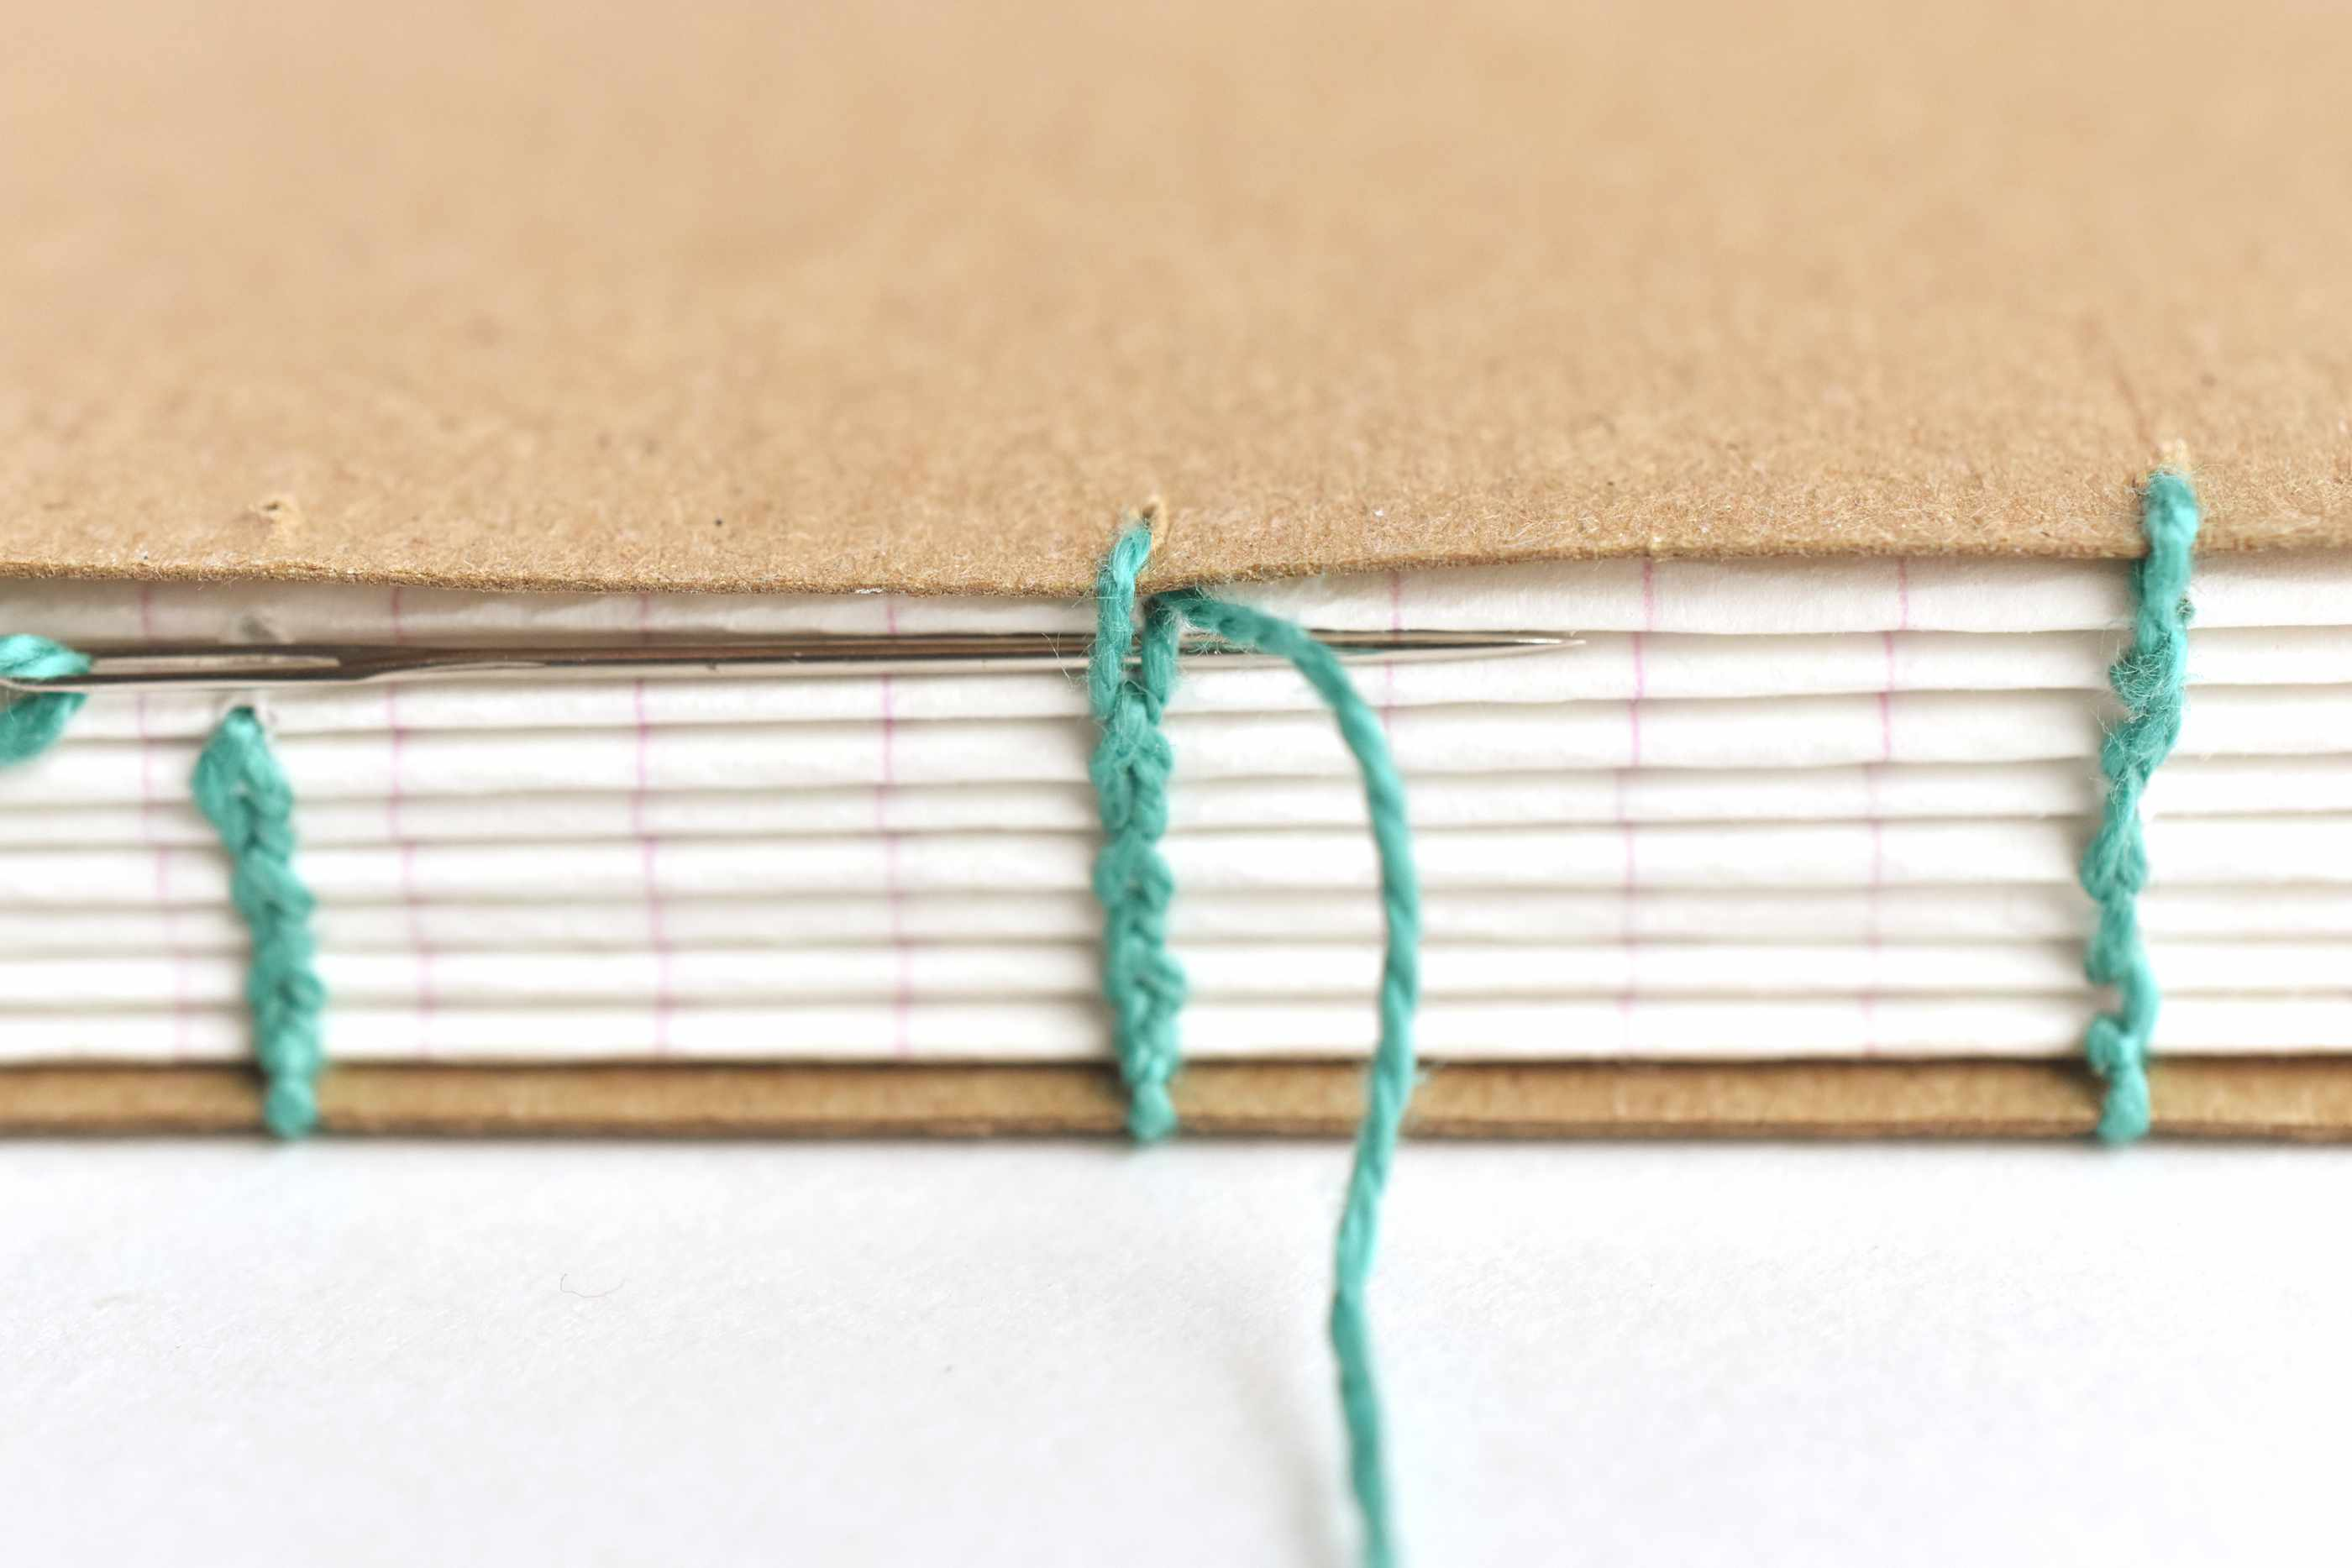 Go Through the Cover and the Previous Coptic Stitch